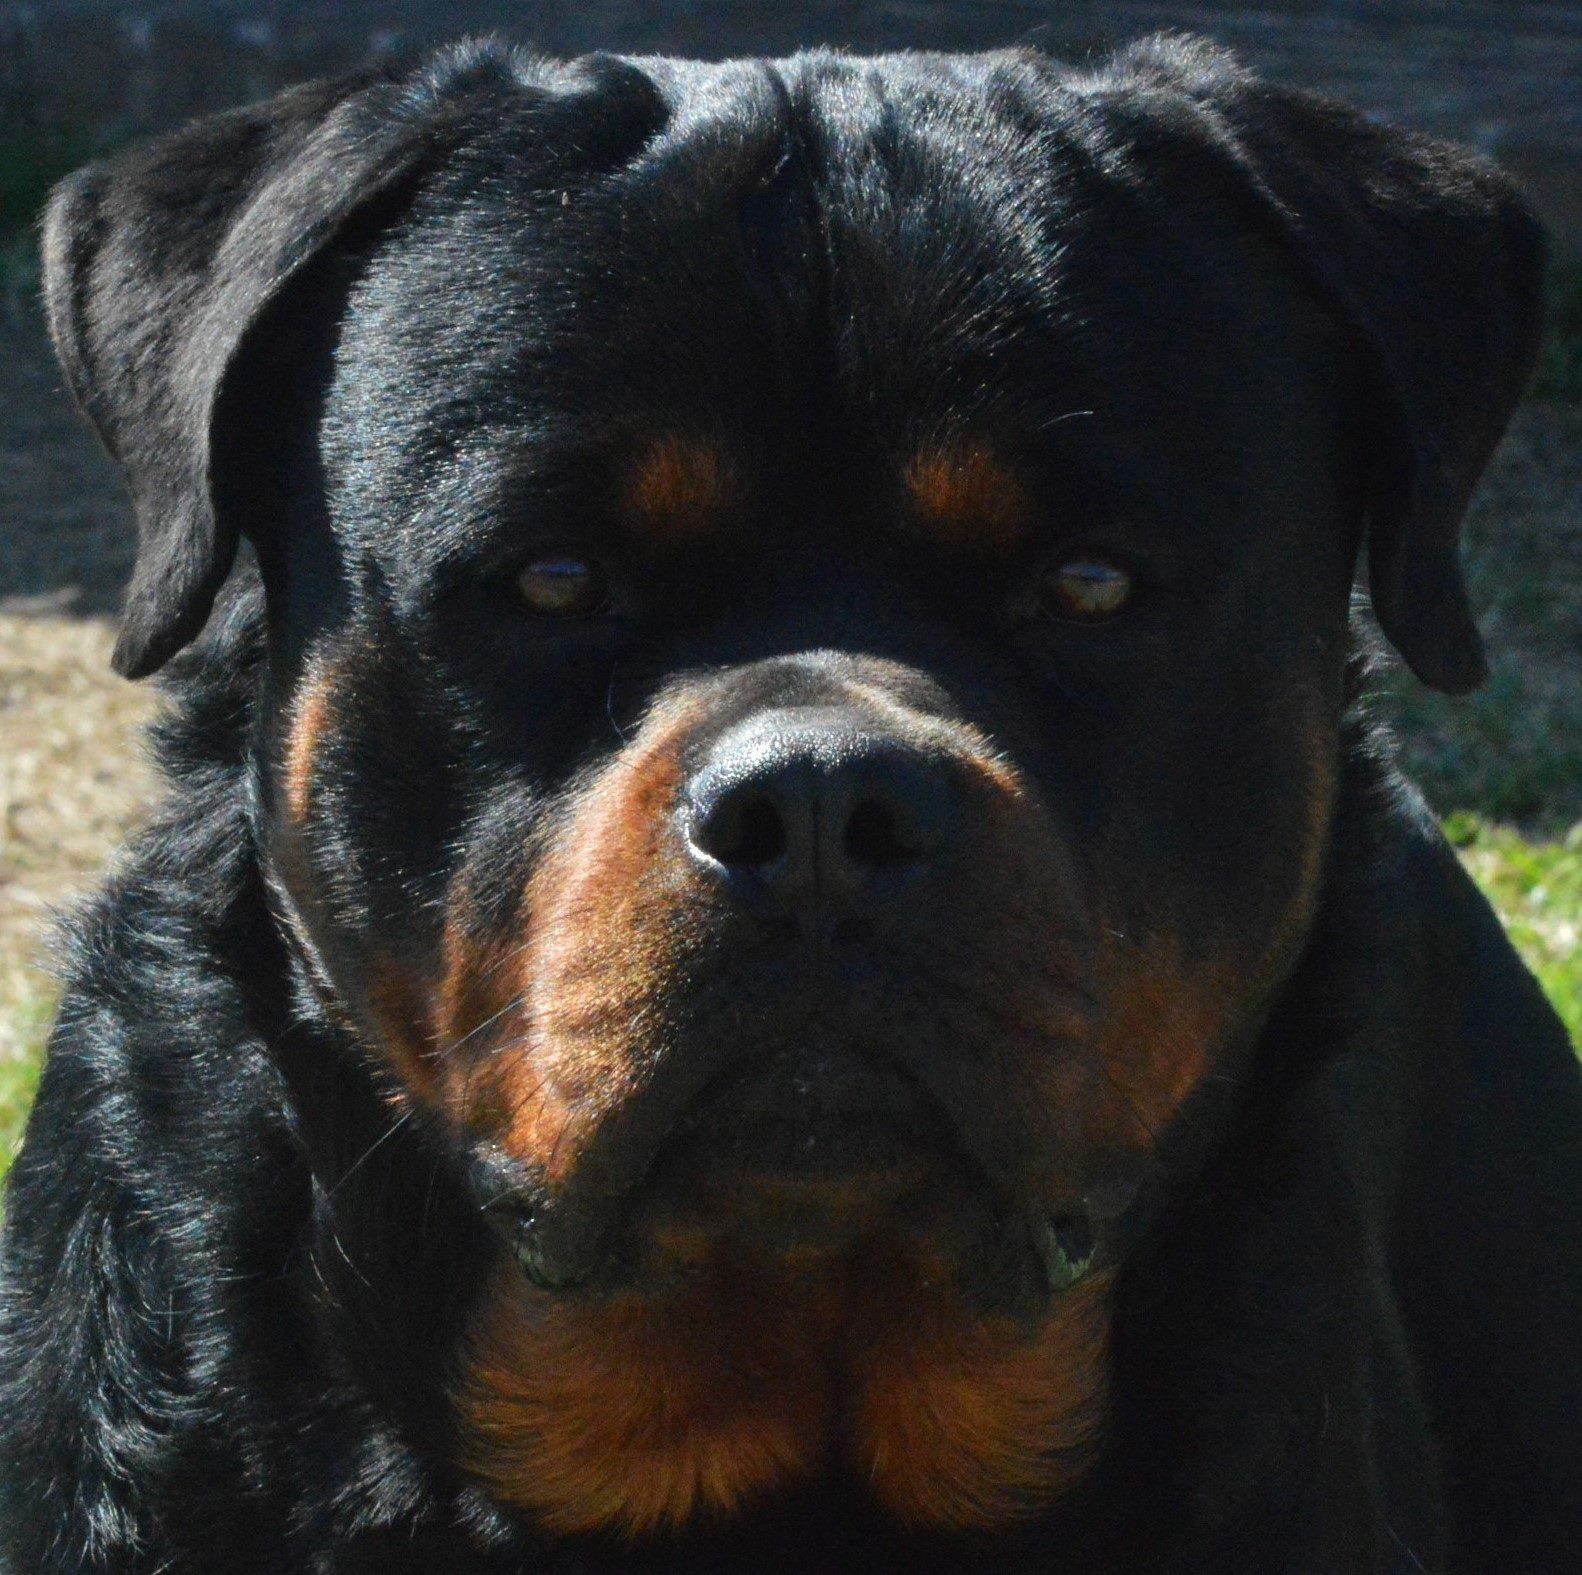 We Would Like To Welcome You To Haus Des Groben Pfoten Rottweilers